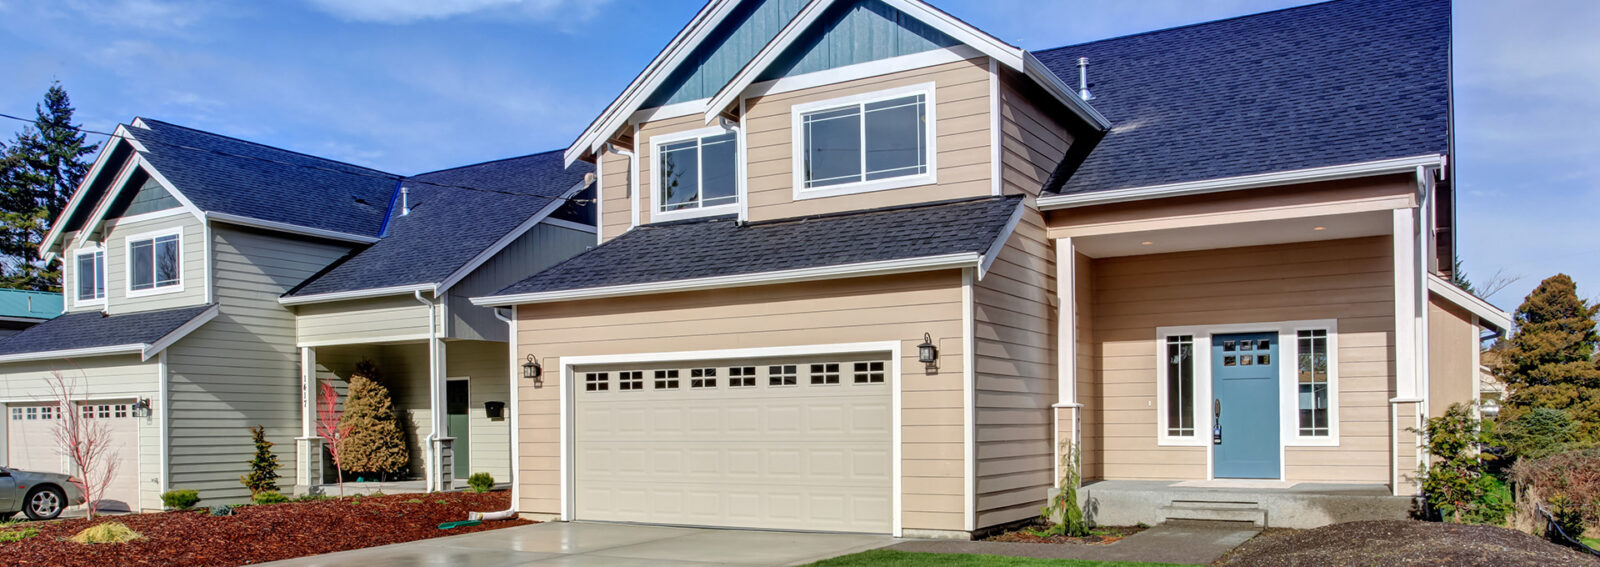 Home Insurance in Hingham, Alton NH, Quincy MA